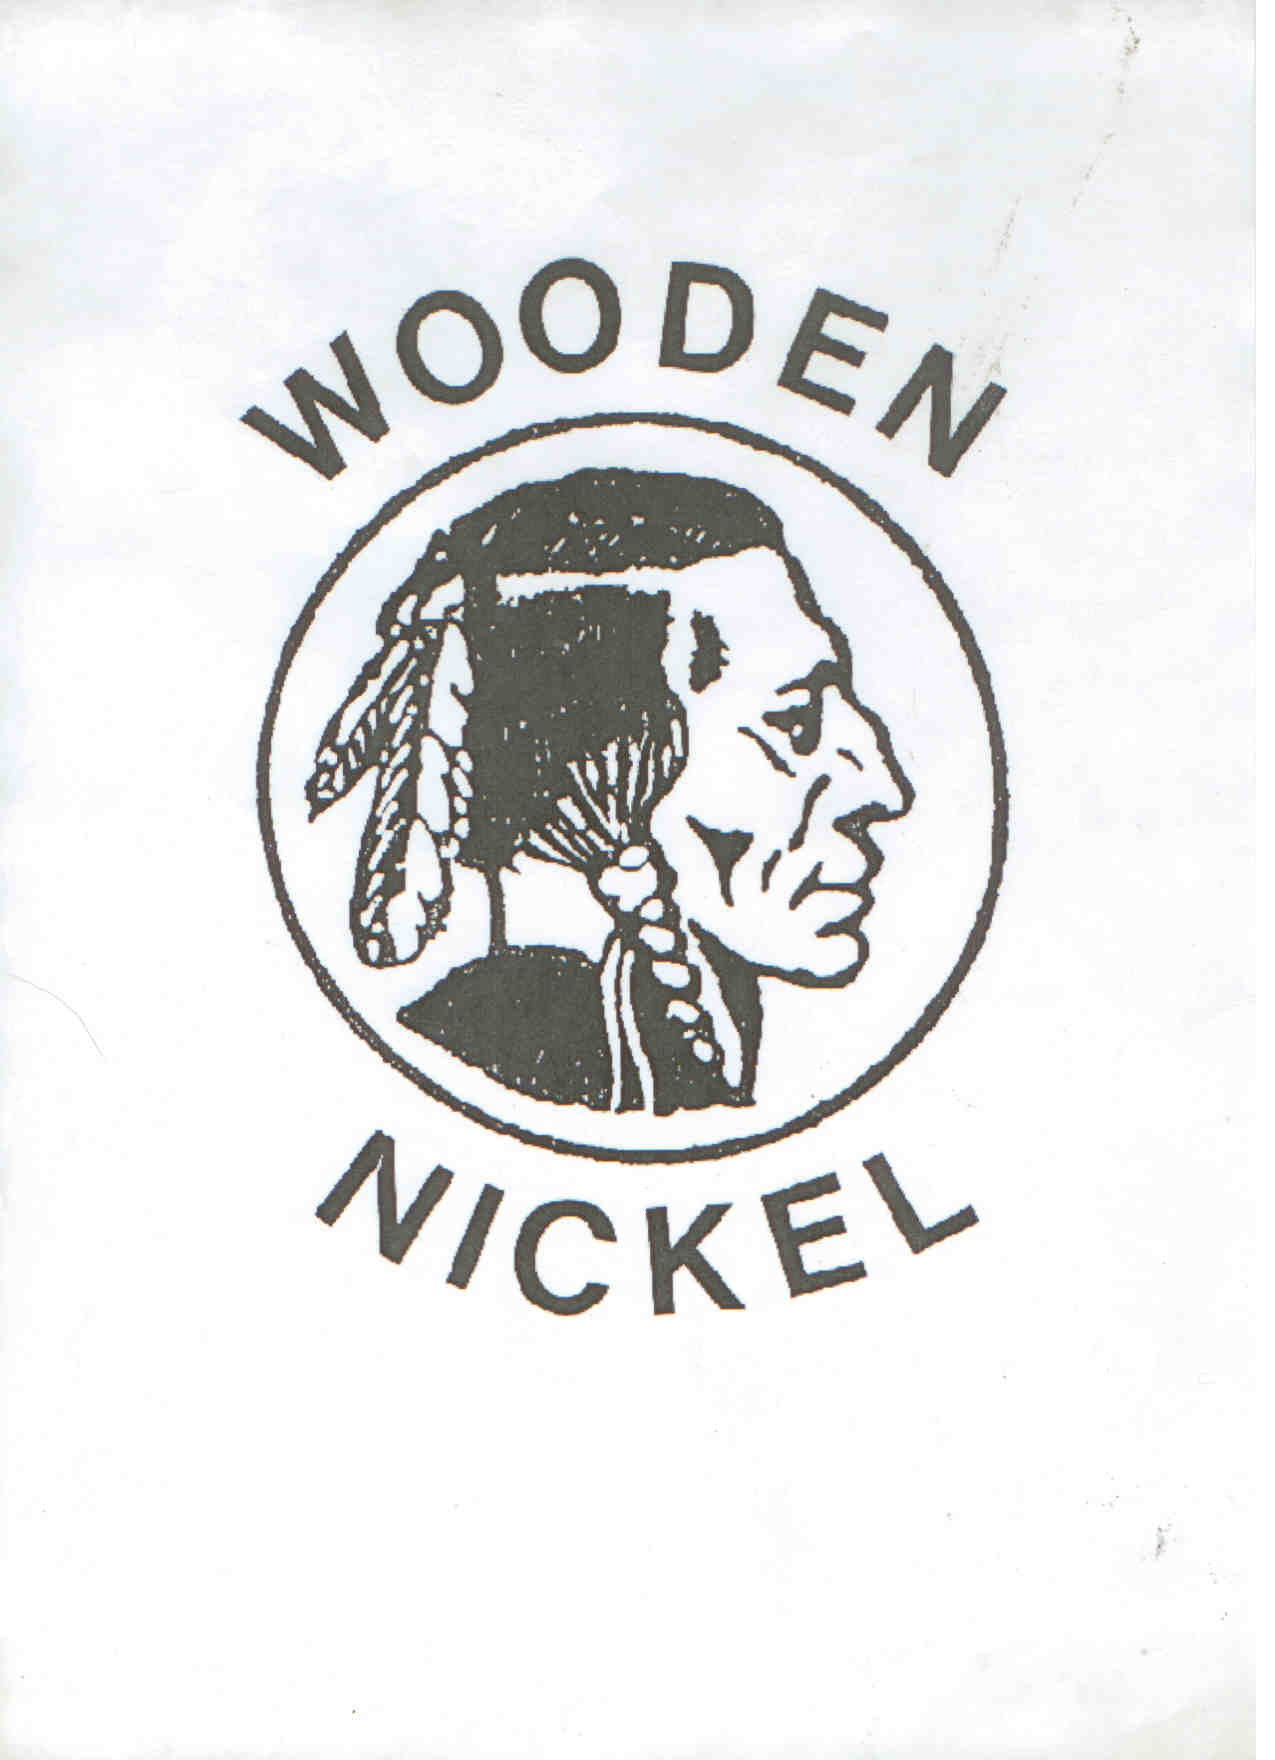 Wooden Nickel Logo